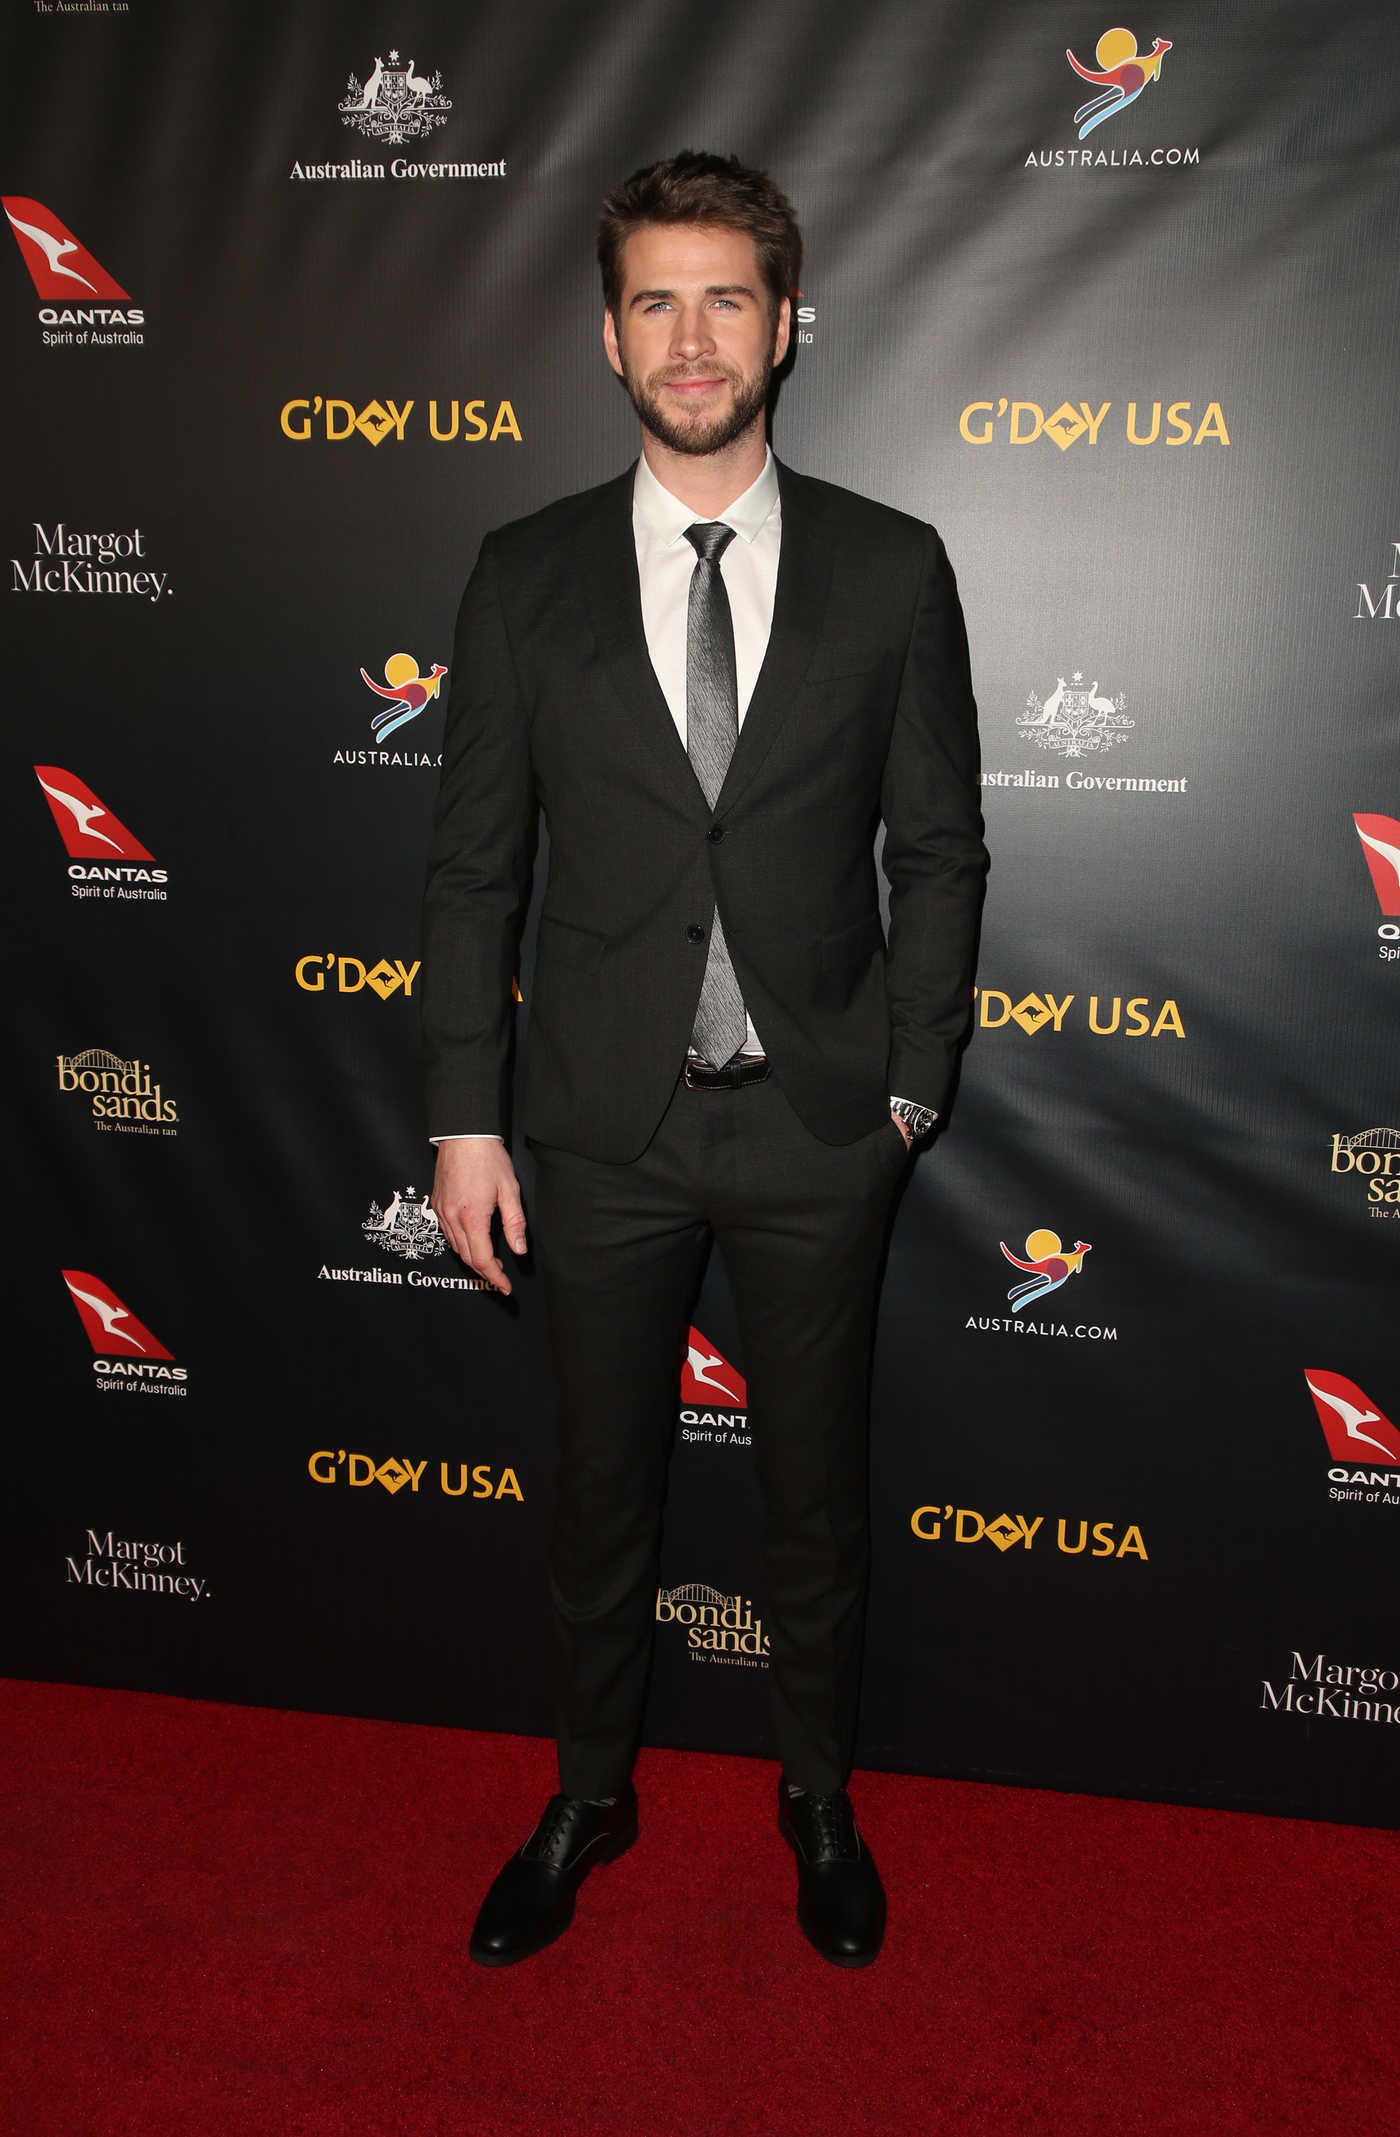 Liam Hemsworth Attends the 16th Annual G'Day USA Los Angeles Gala in LA 01/26/2019